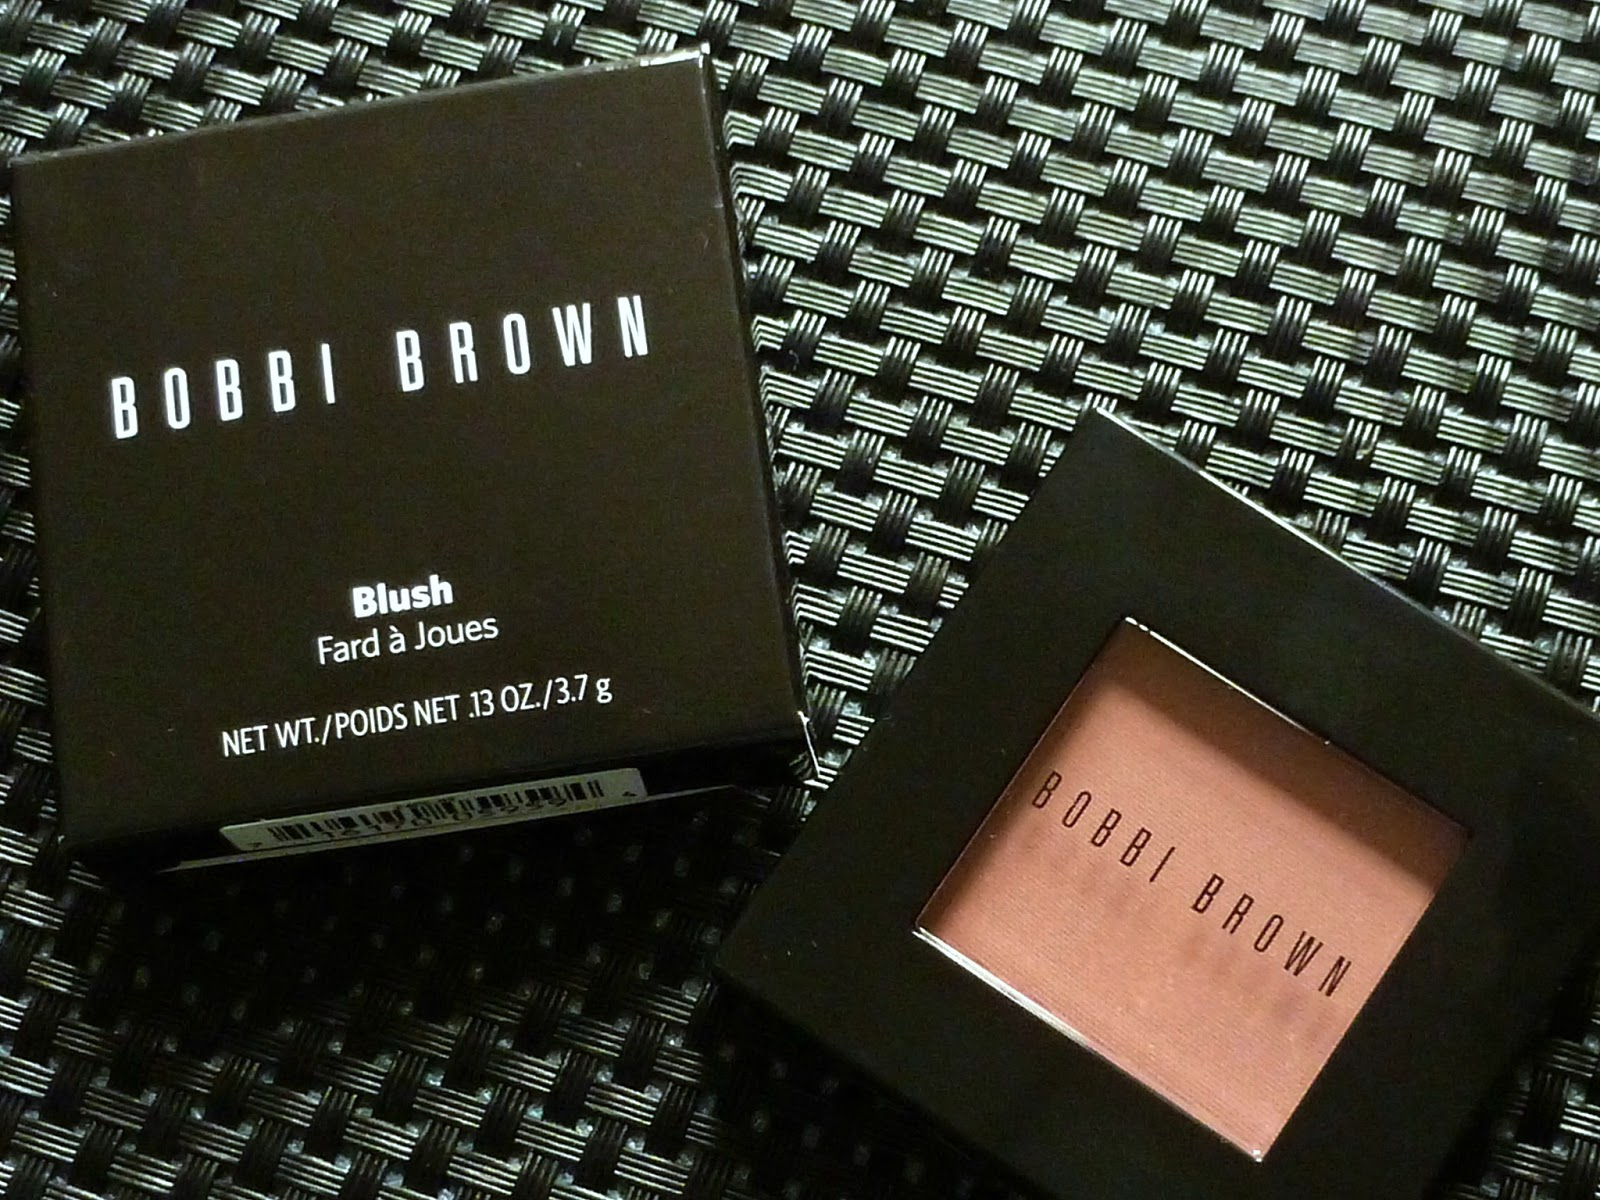 A picture of the Bobbi Brown Blush in Tawny